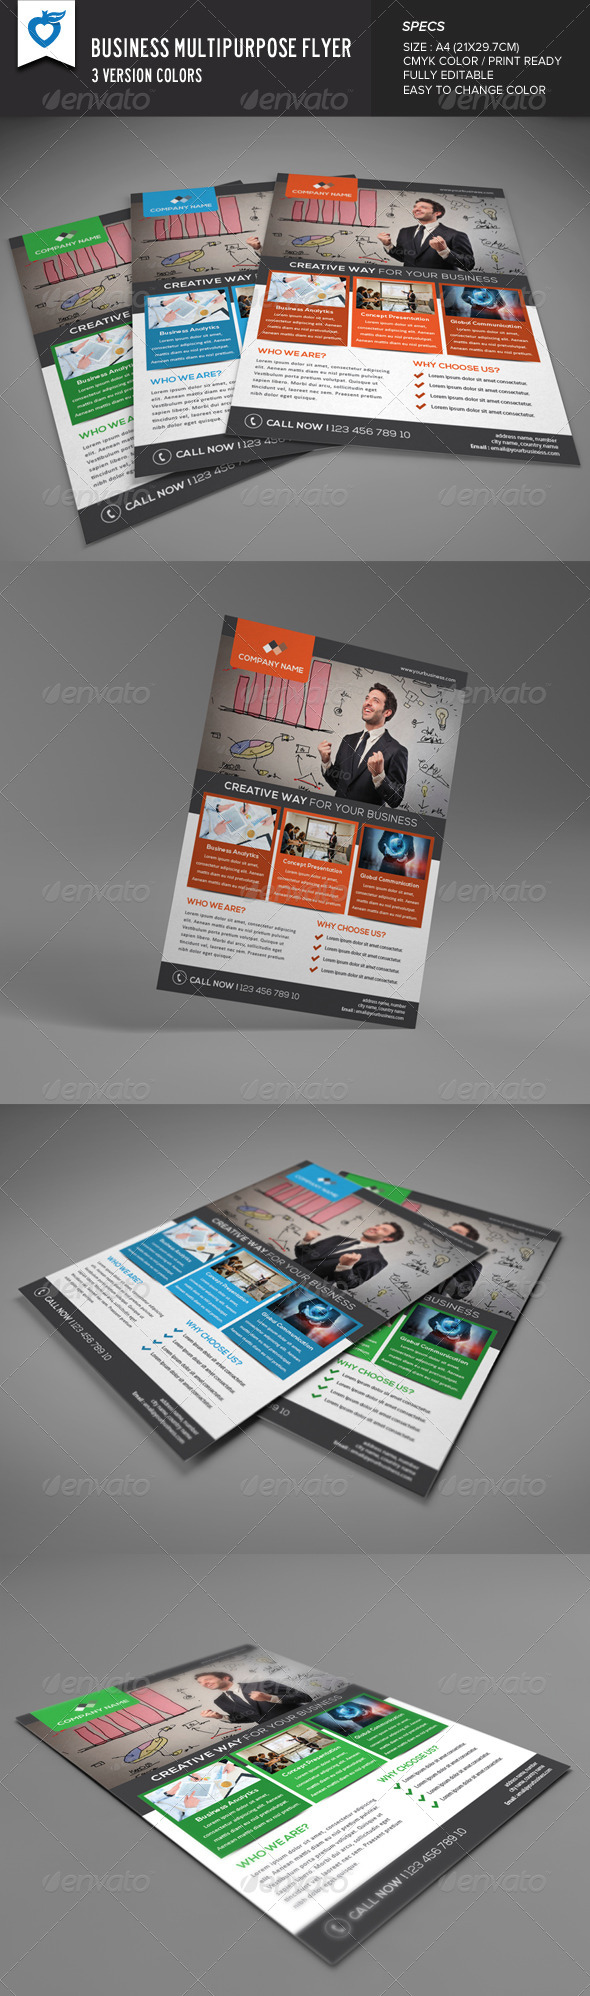 GraphicRiver Business Multipurpose Flyer 8599094